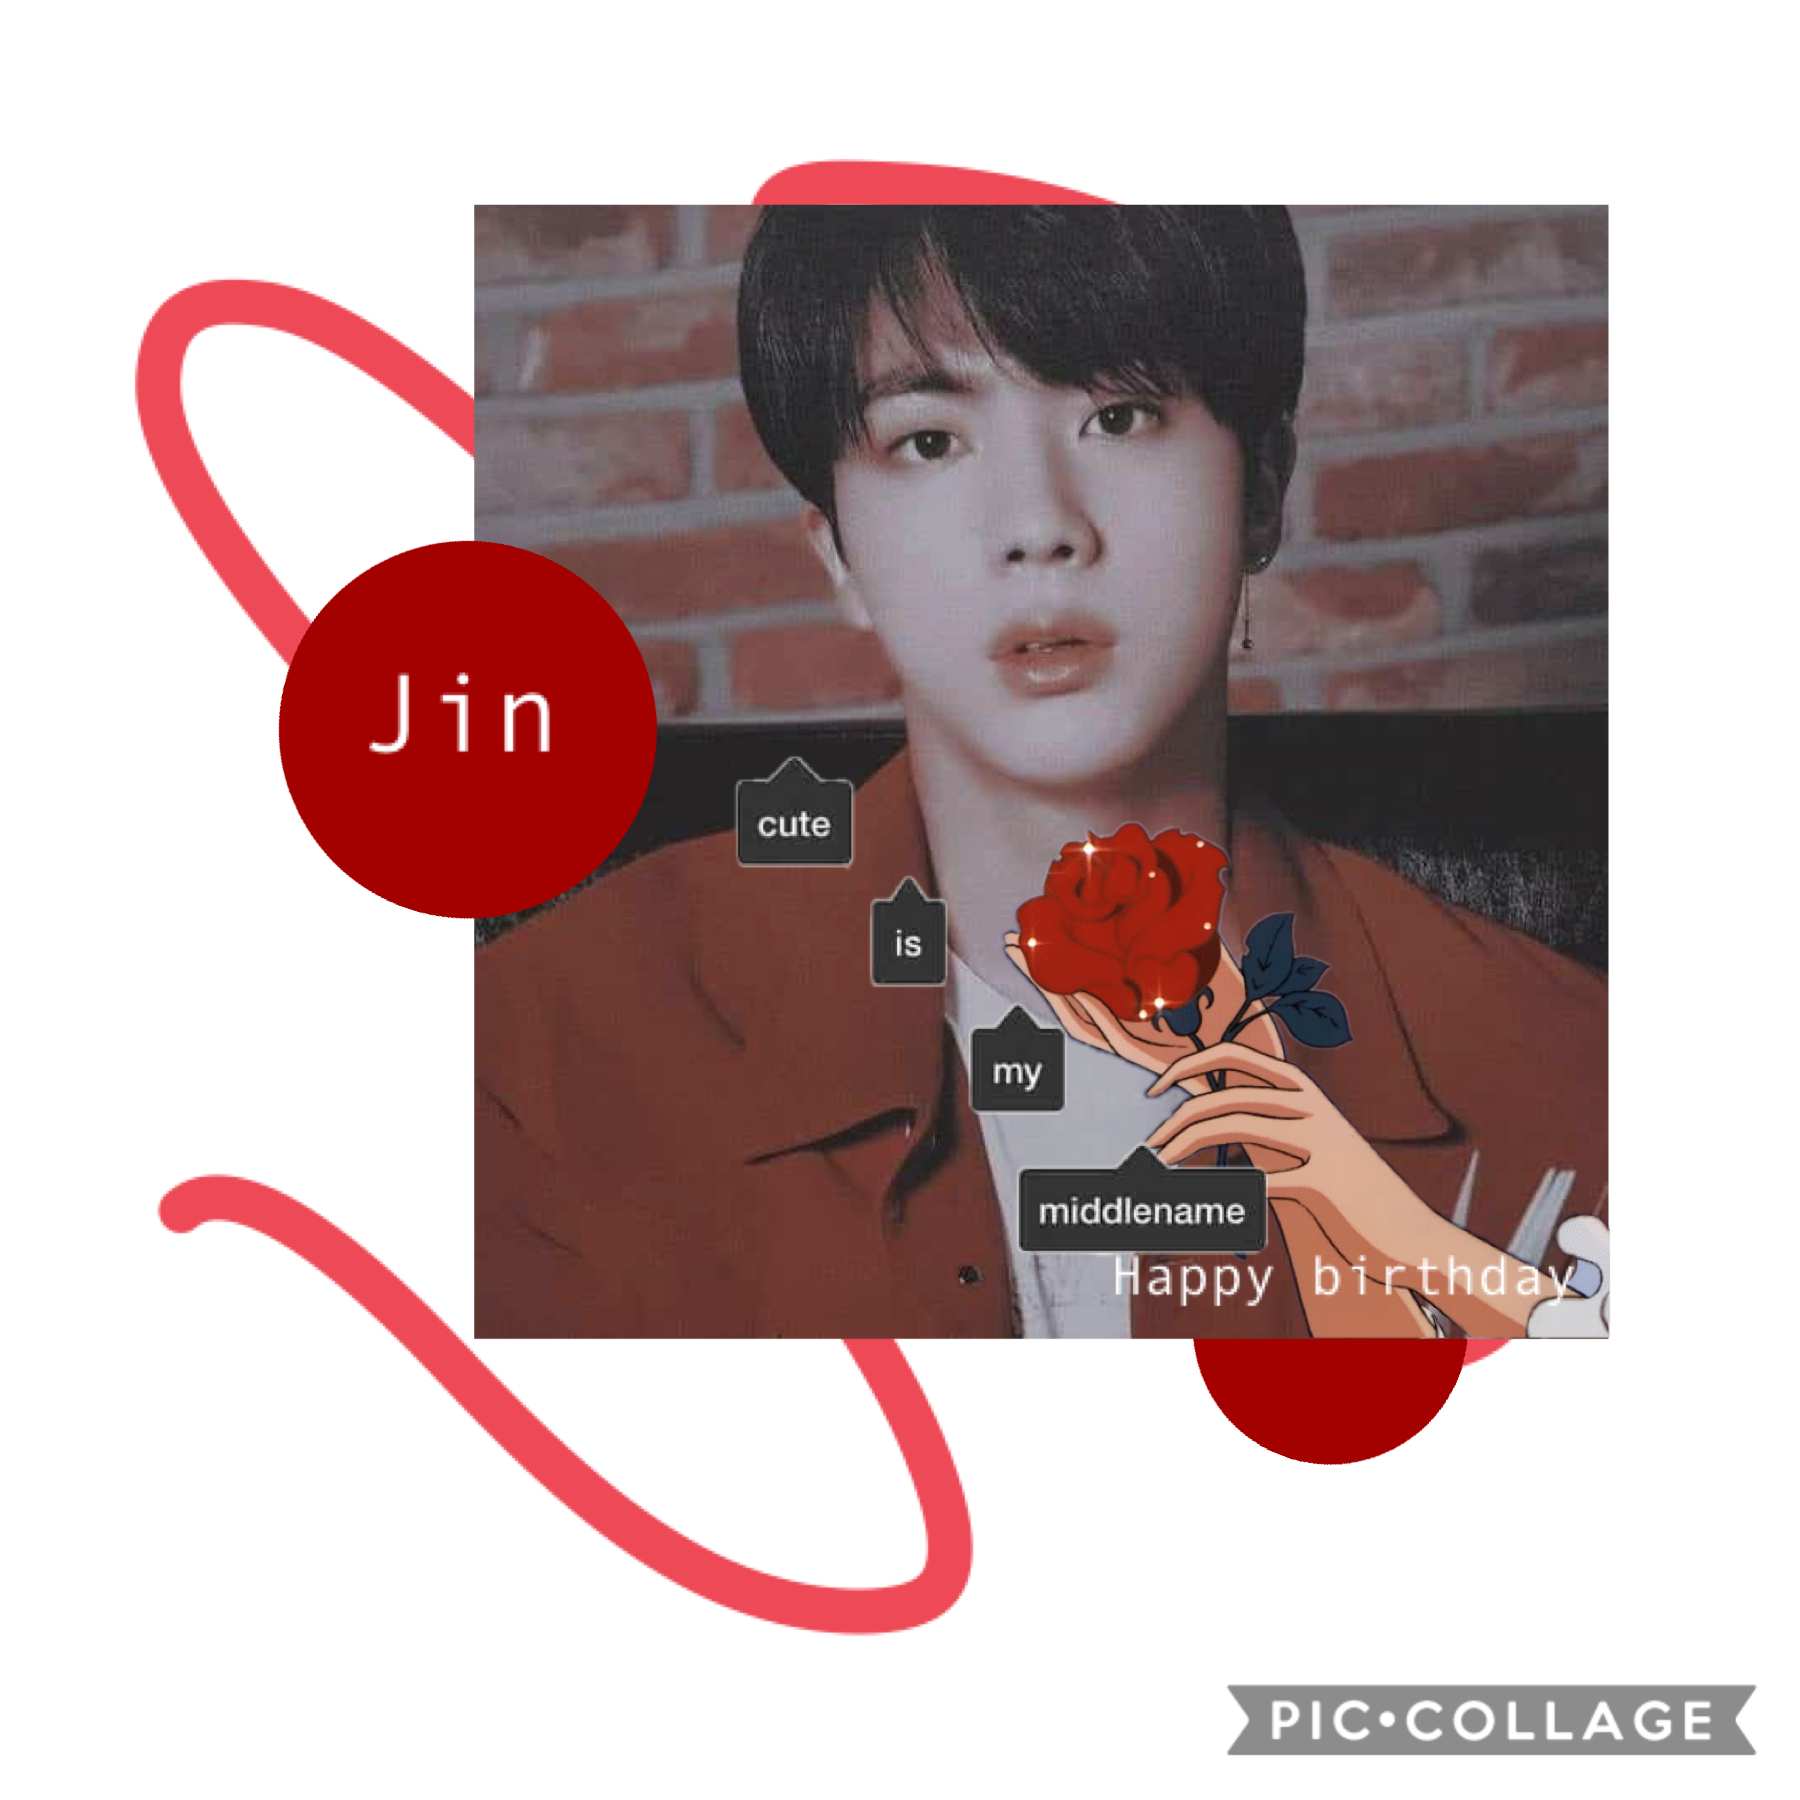 HAPPY (late oops) BIRTHDAY JIN, LOVE YOU SO MUCH❤️🌹